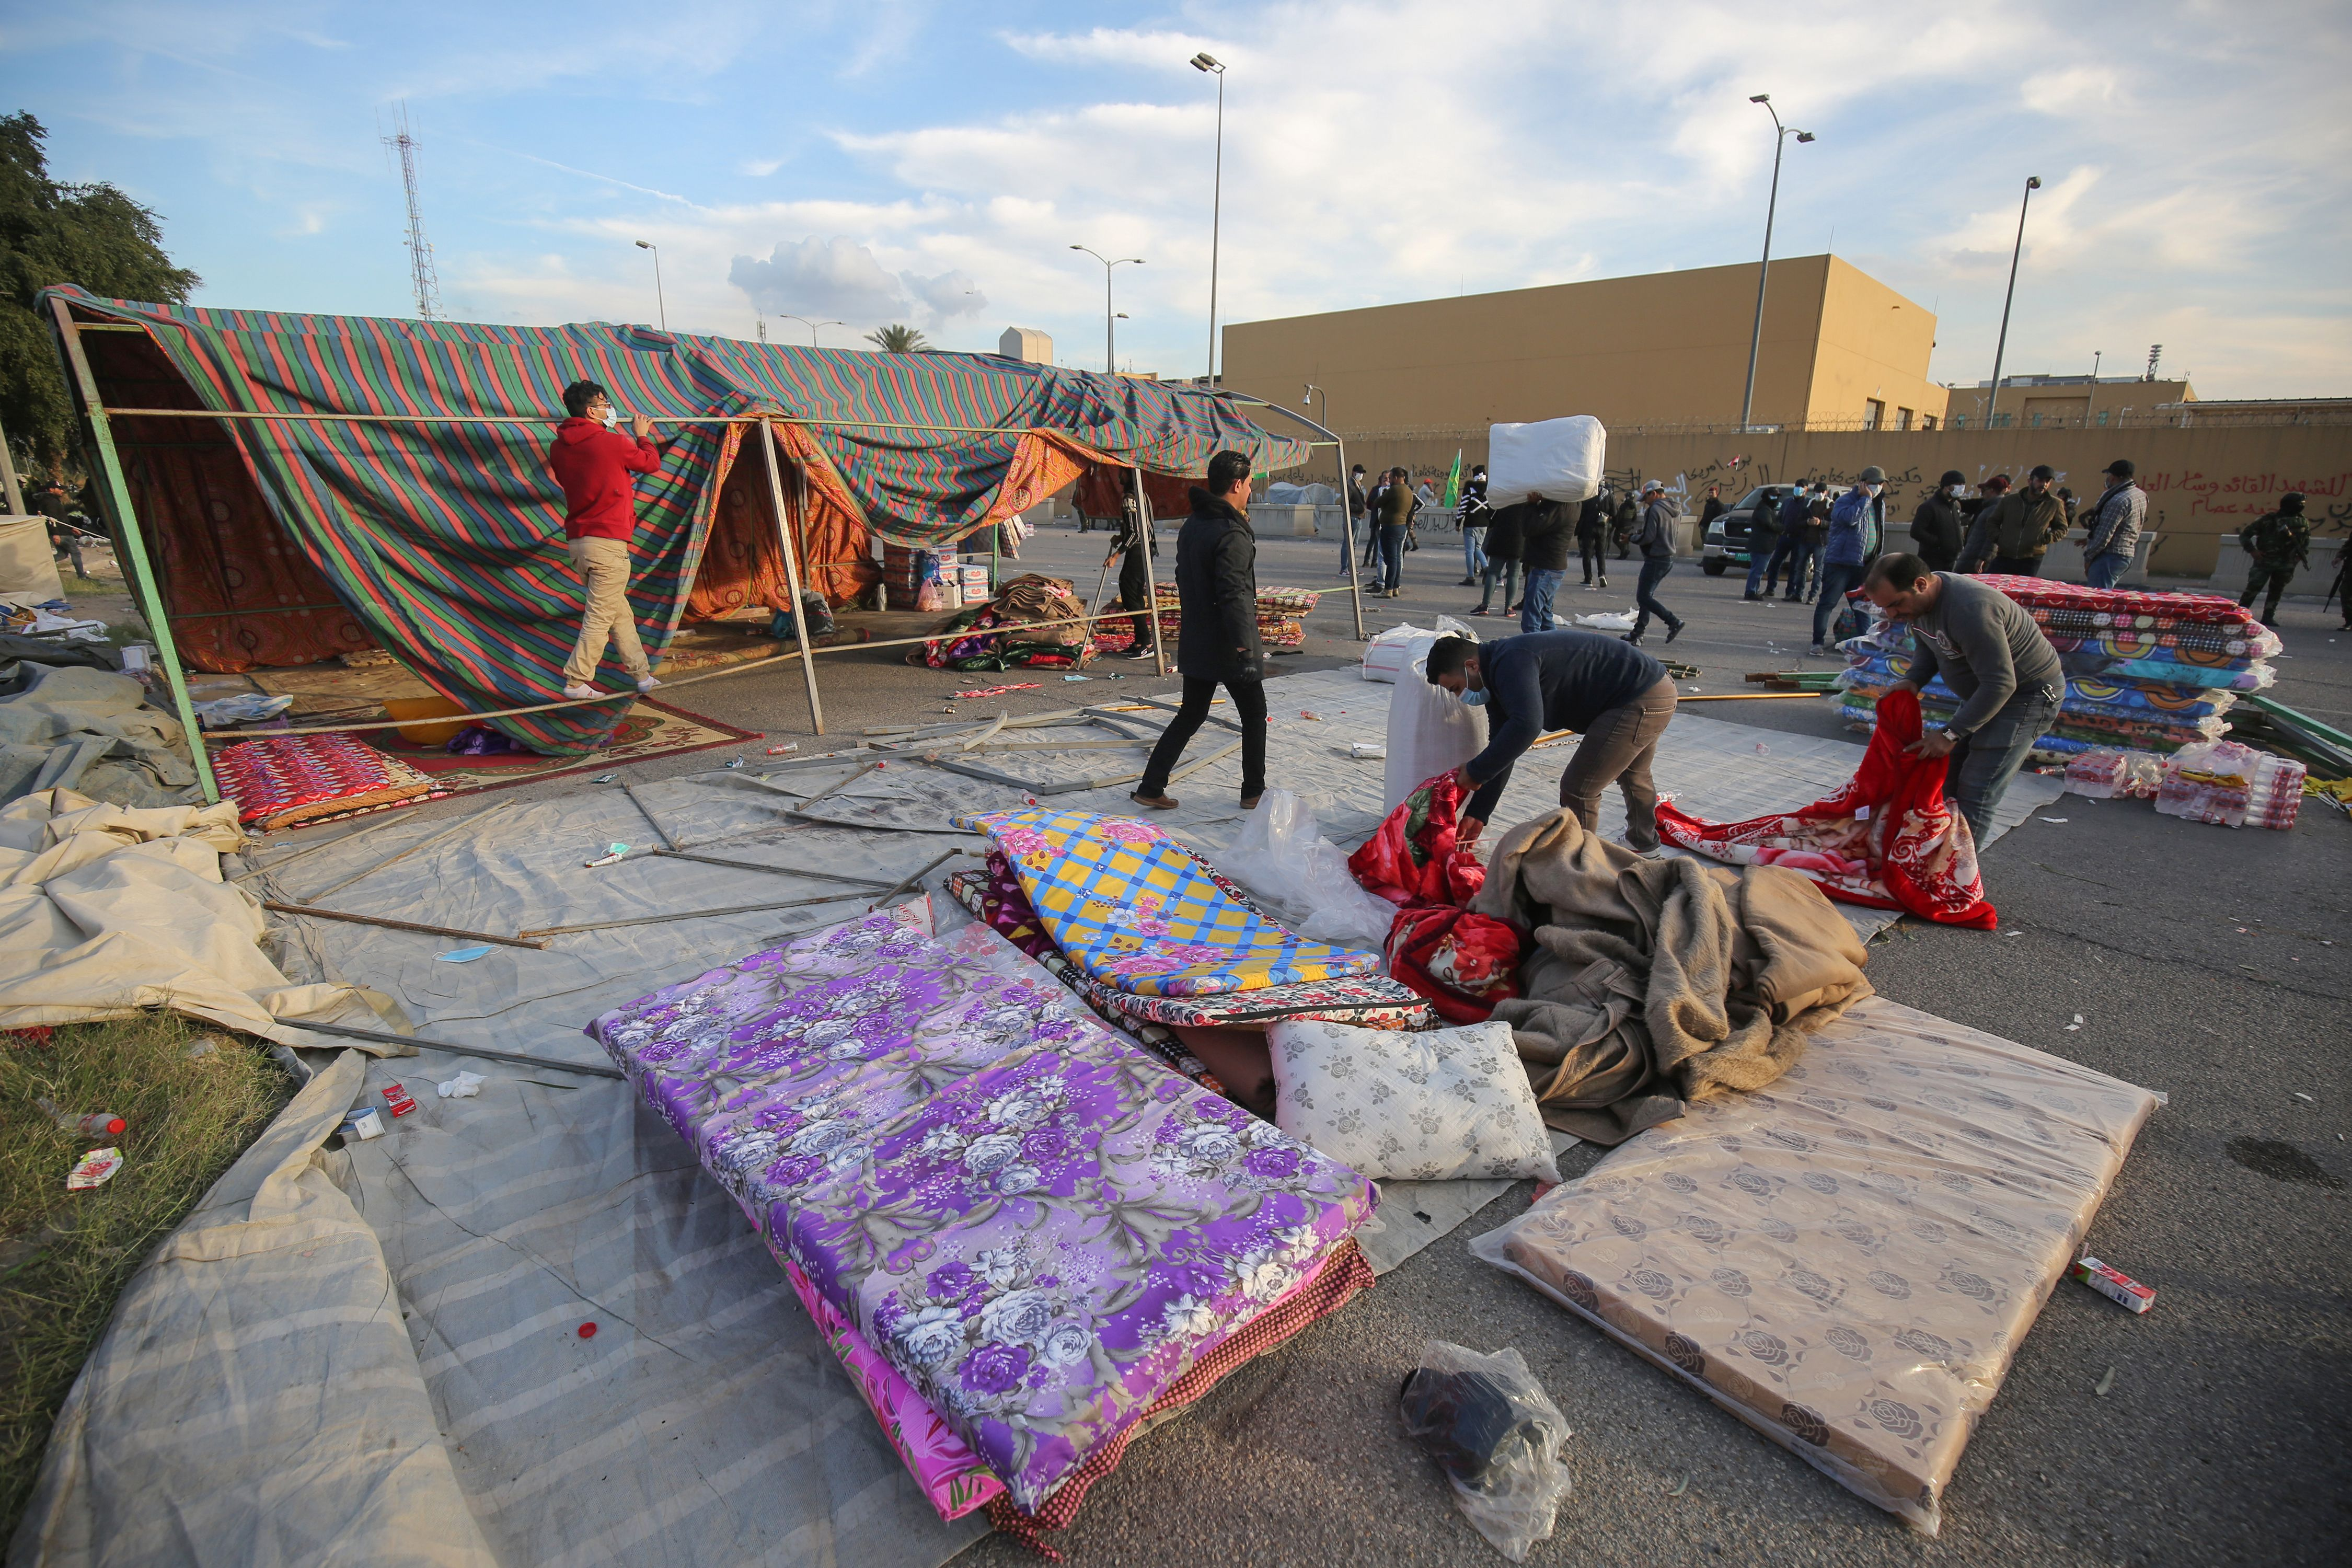 Supporters and members of Iraq's Hashed al-Shaabi paramilitary force dismantle their tents as they prepare to withdraw from the US embassy perimeter. (AHMAD AL-RUBAYE/AFP via Getty Images)